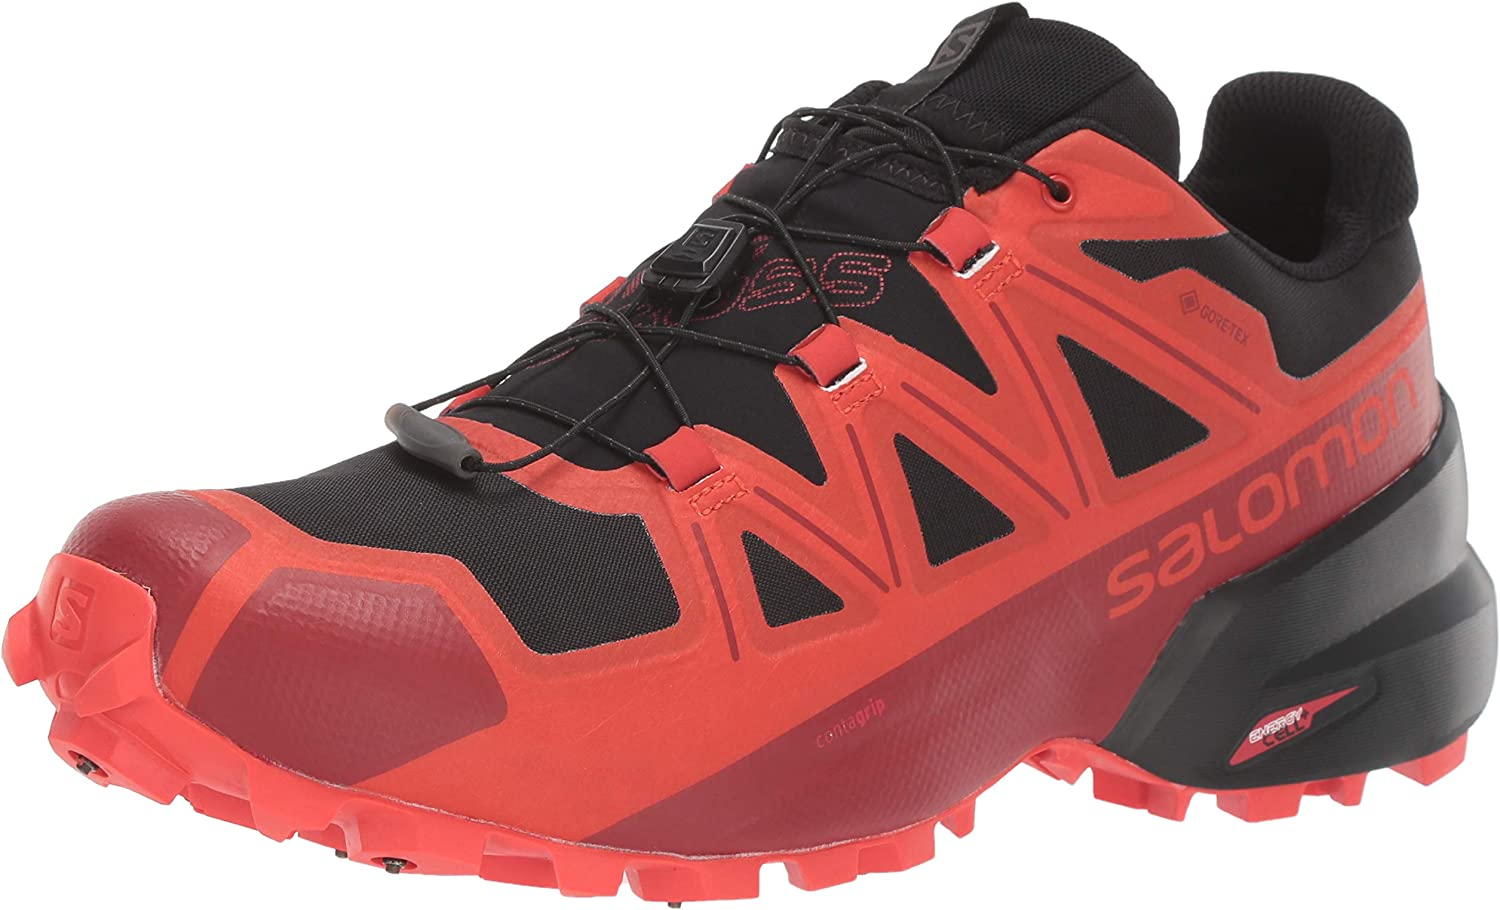 Salomon Men s Spikecross 5 GTX Trail Running Shoes